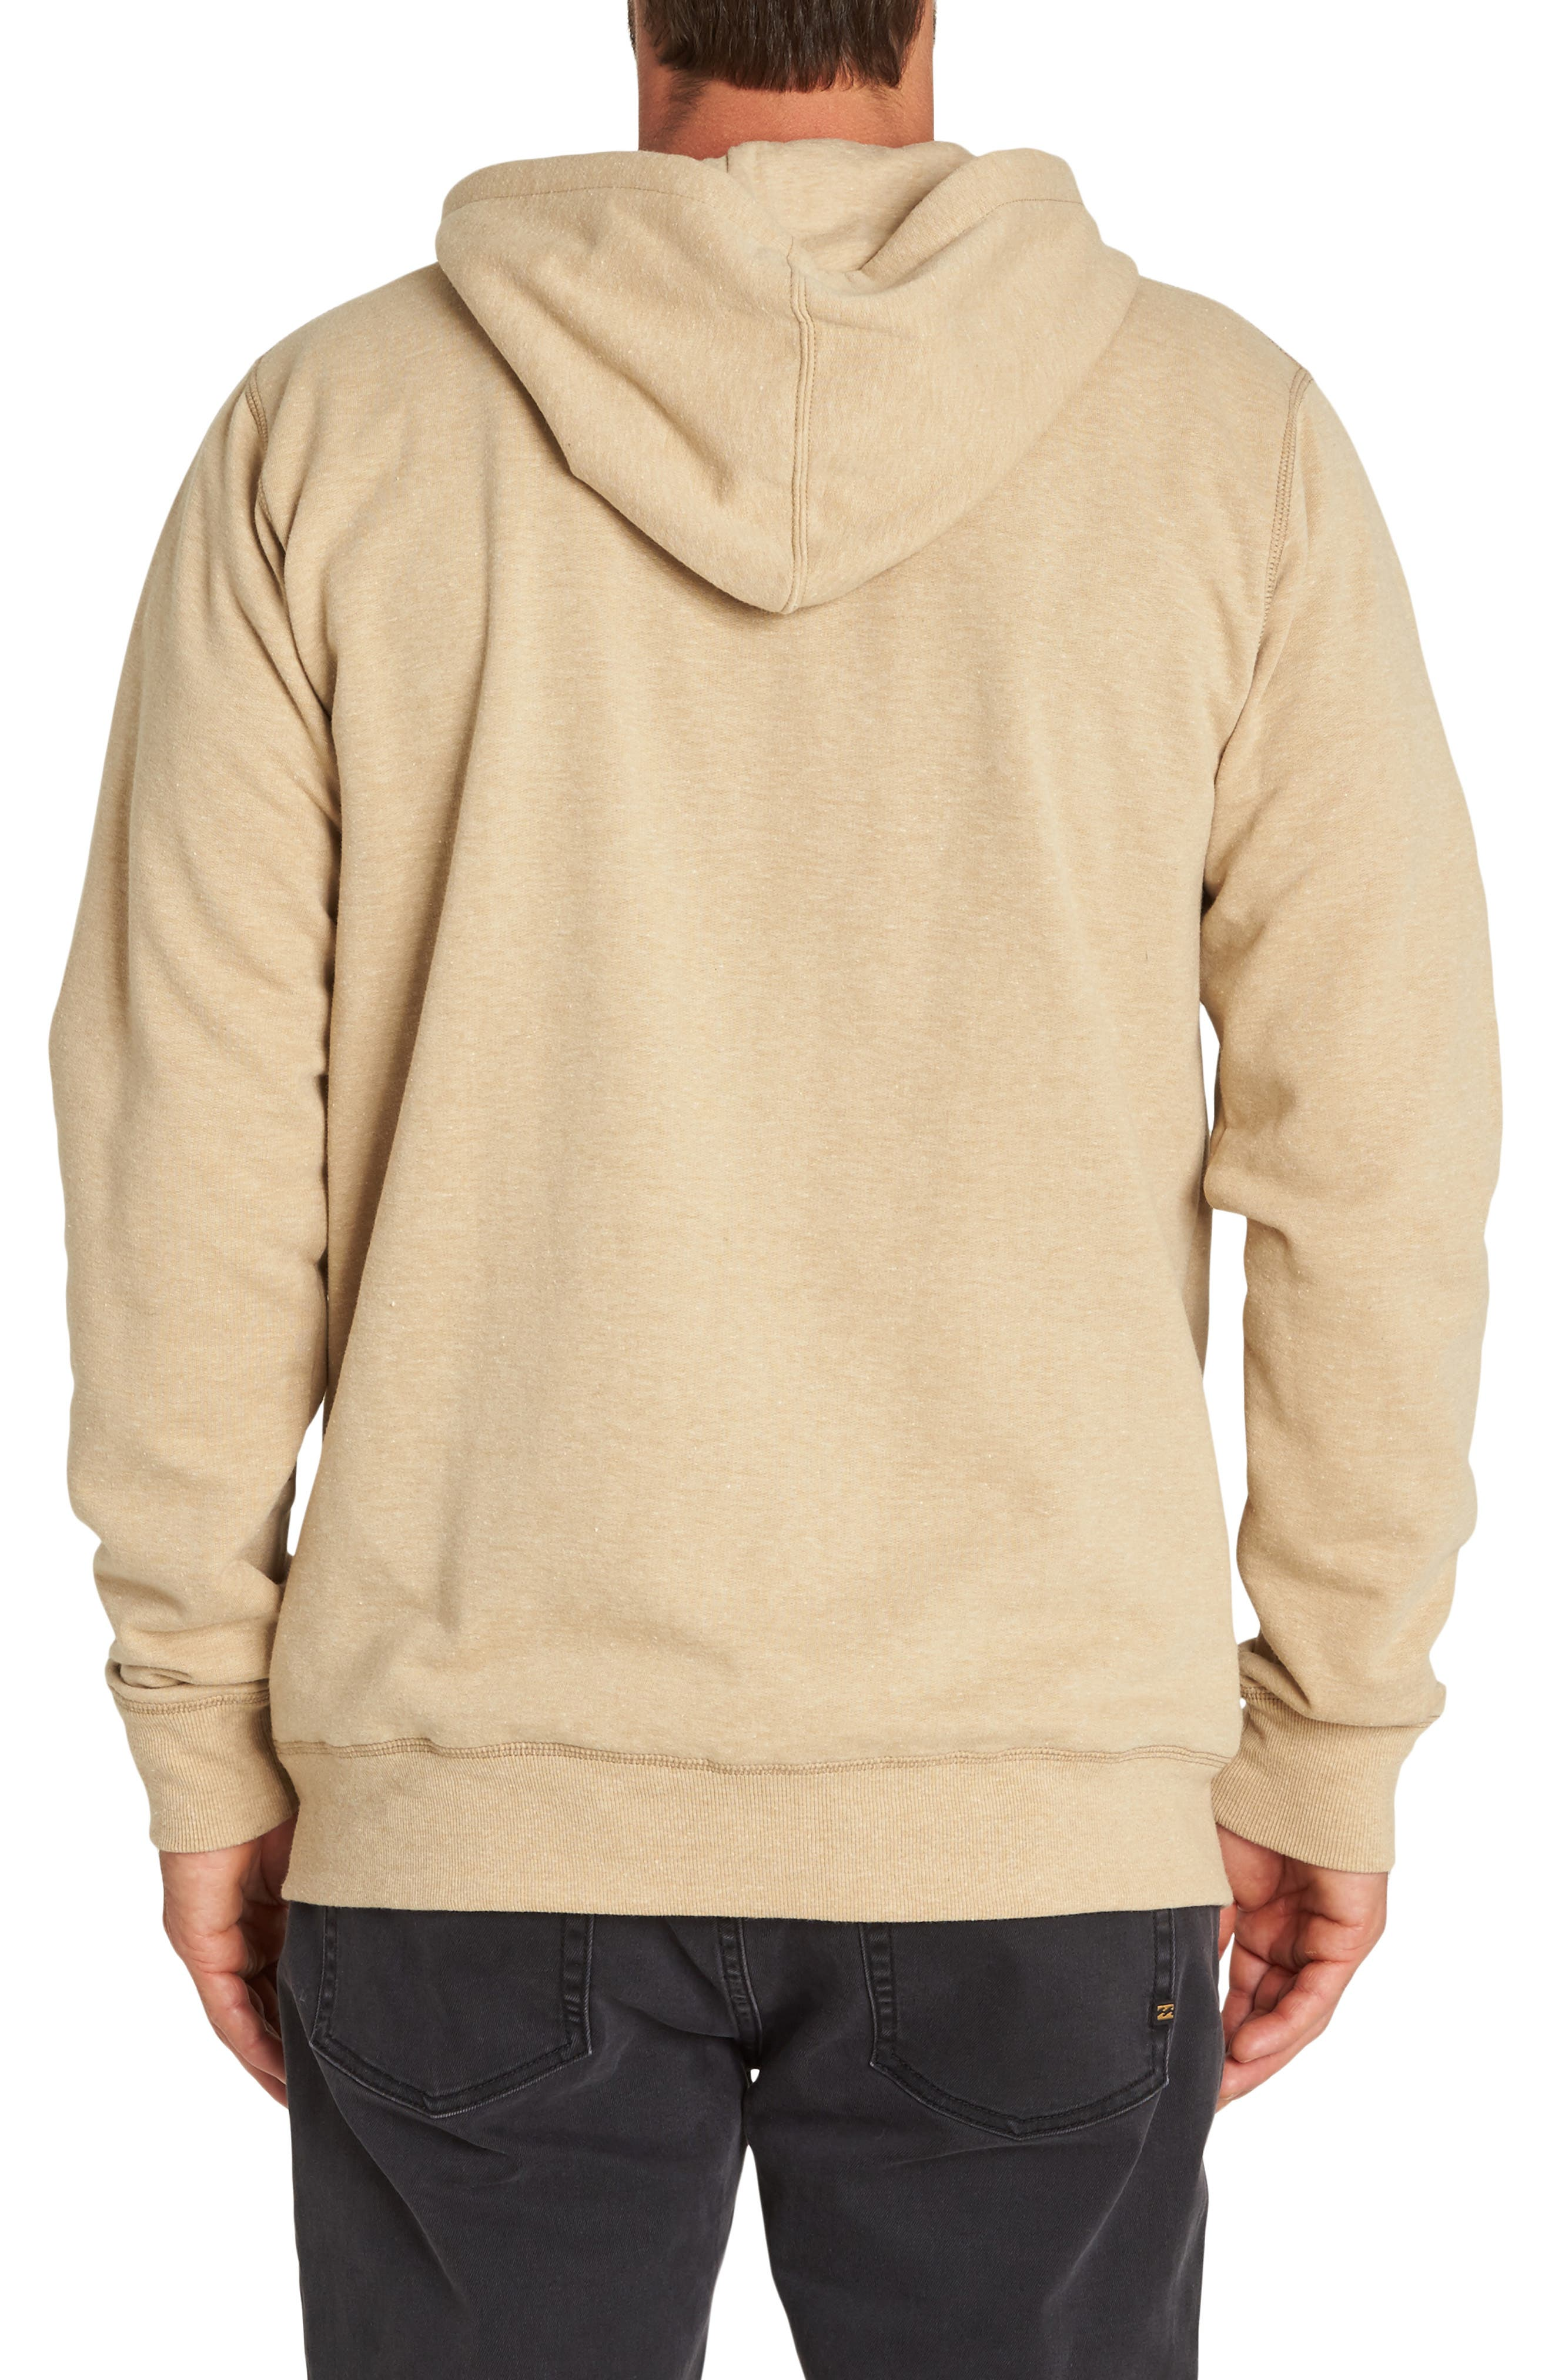 All Day Zip Hoodie,                             Alternate thumbnail 2, color,                             STRAW